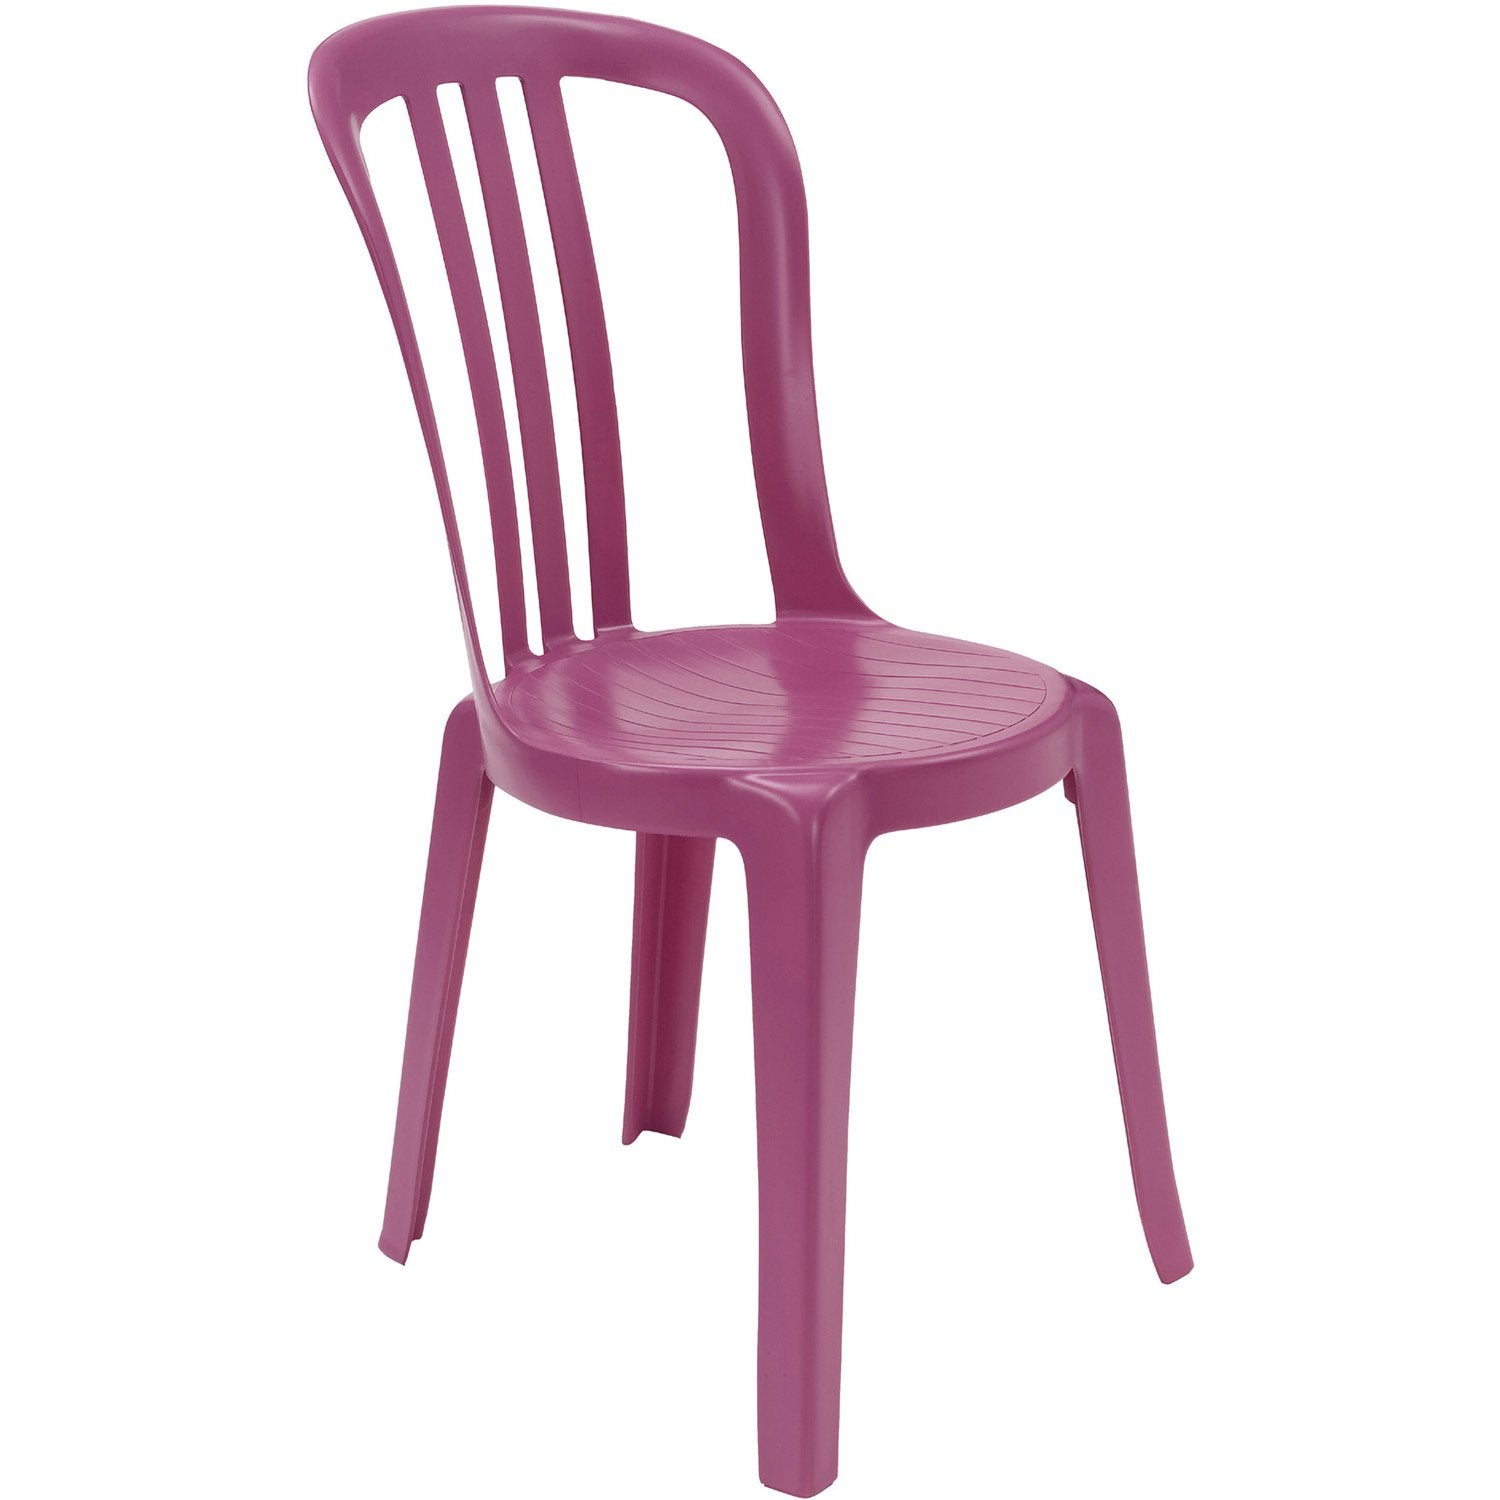 Salon de jardin fuschia for Chaise salon de jardin couleur